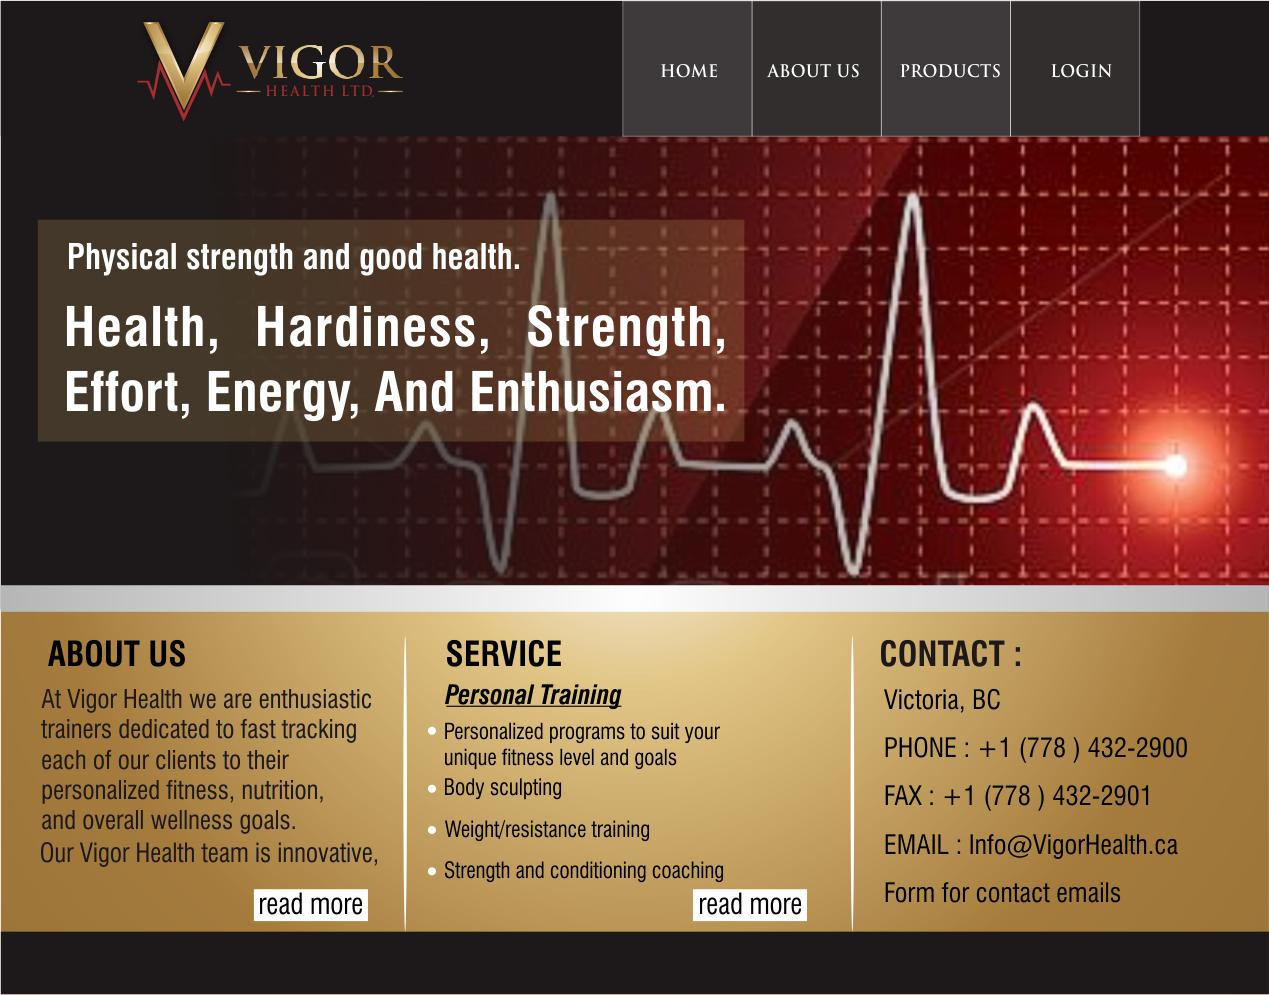 Custom Design by ronny - Entry No. 38 in the Custom Design Contest New Custom Design for Vigor Health Ltd..